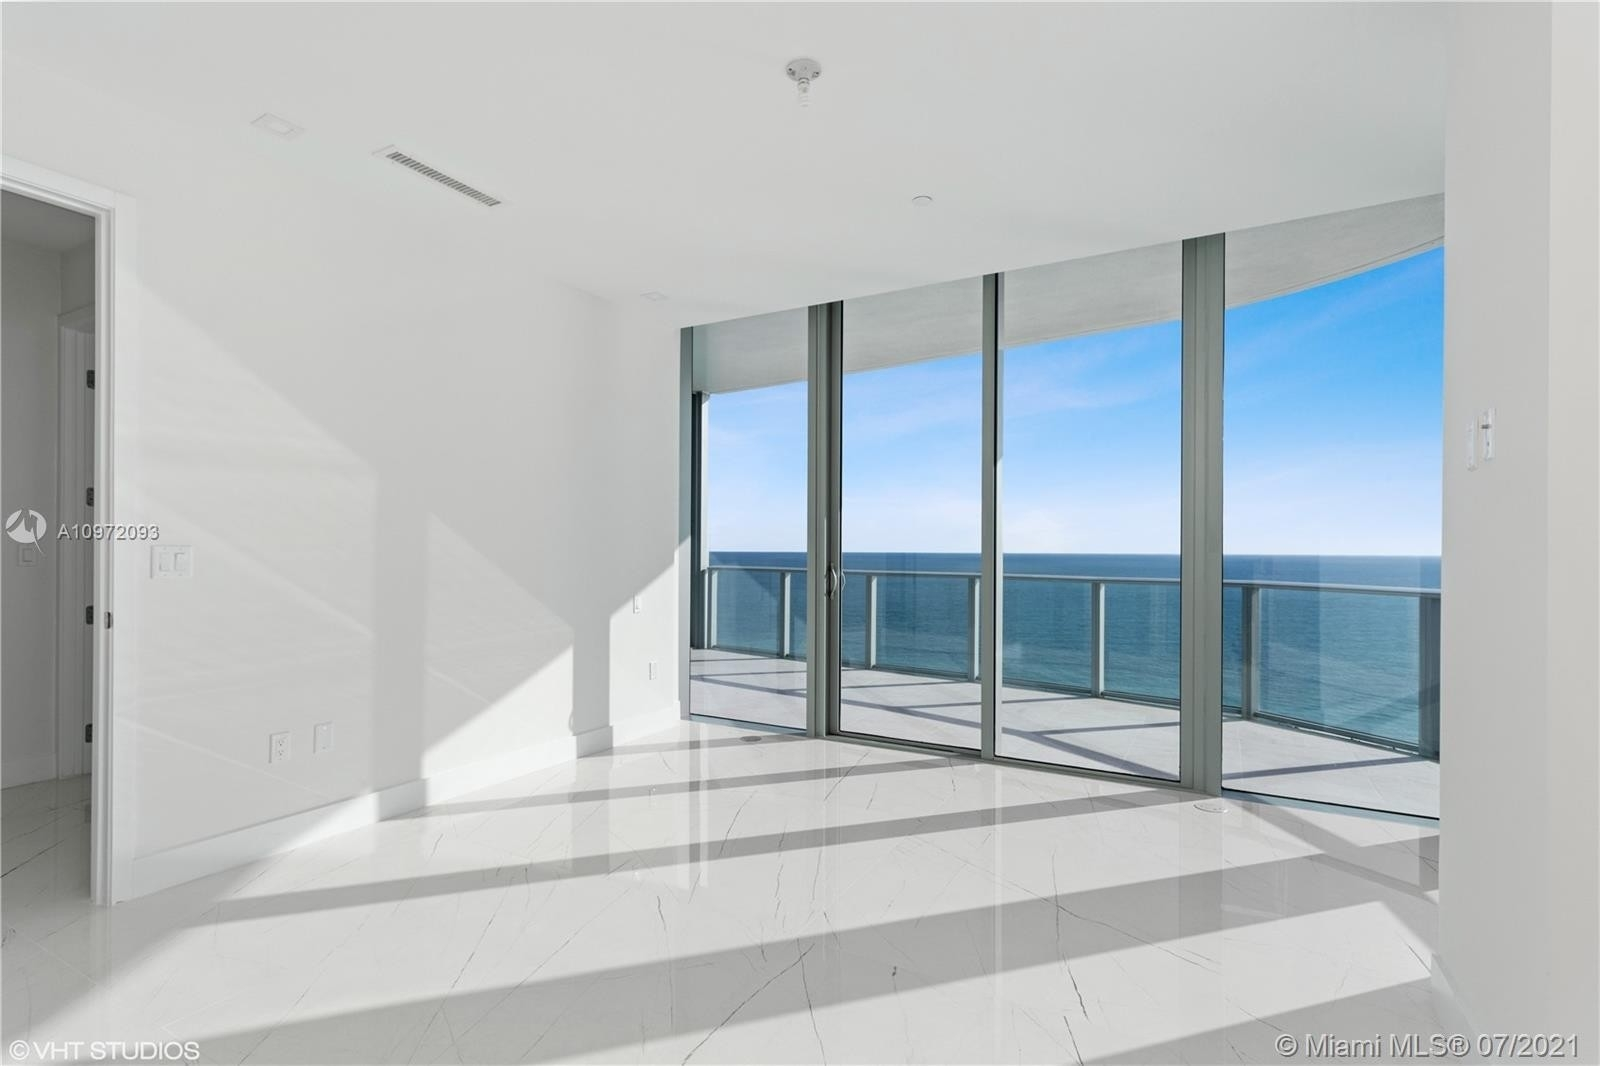 26. Condominiums for Sale at 17475 Collins Ave , 1501 Sunny Isles Beach, FL 33160